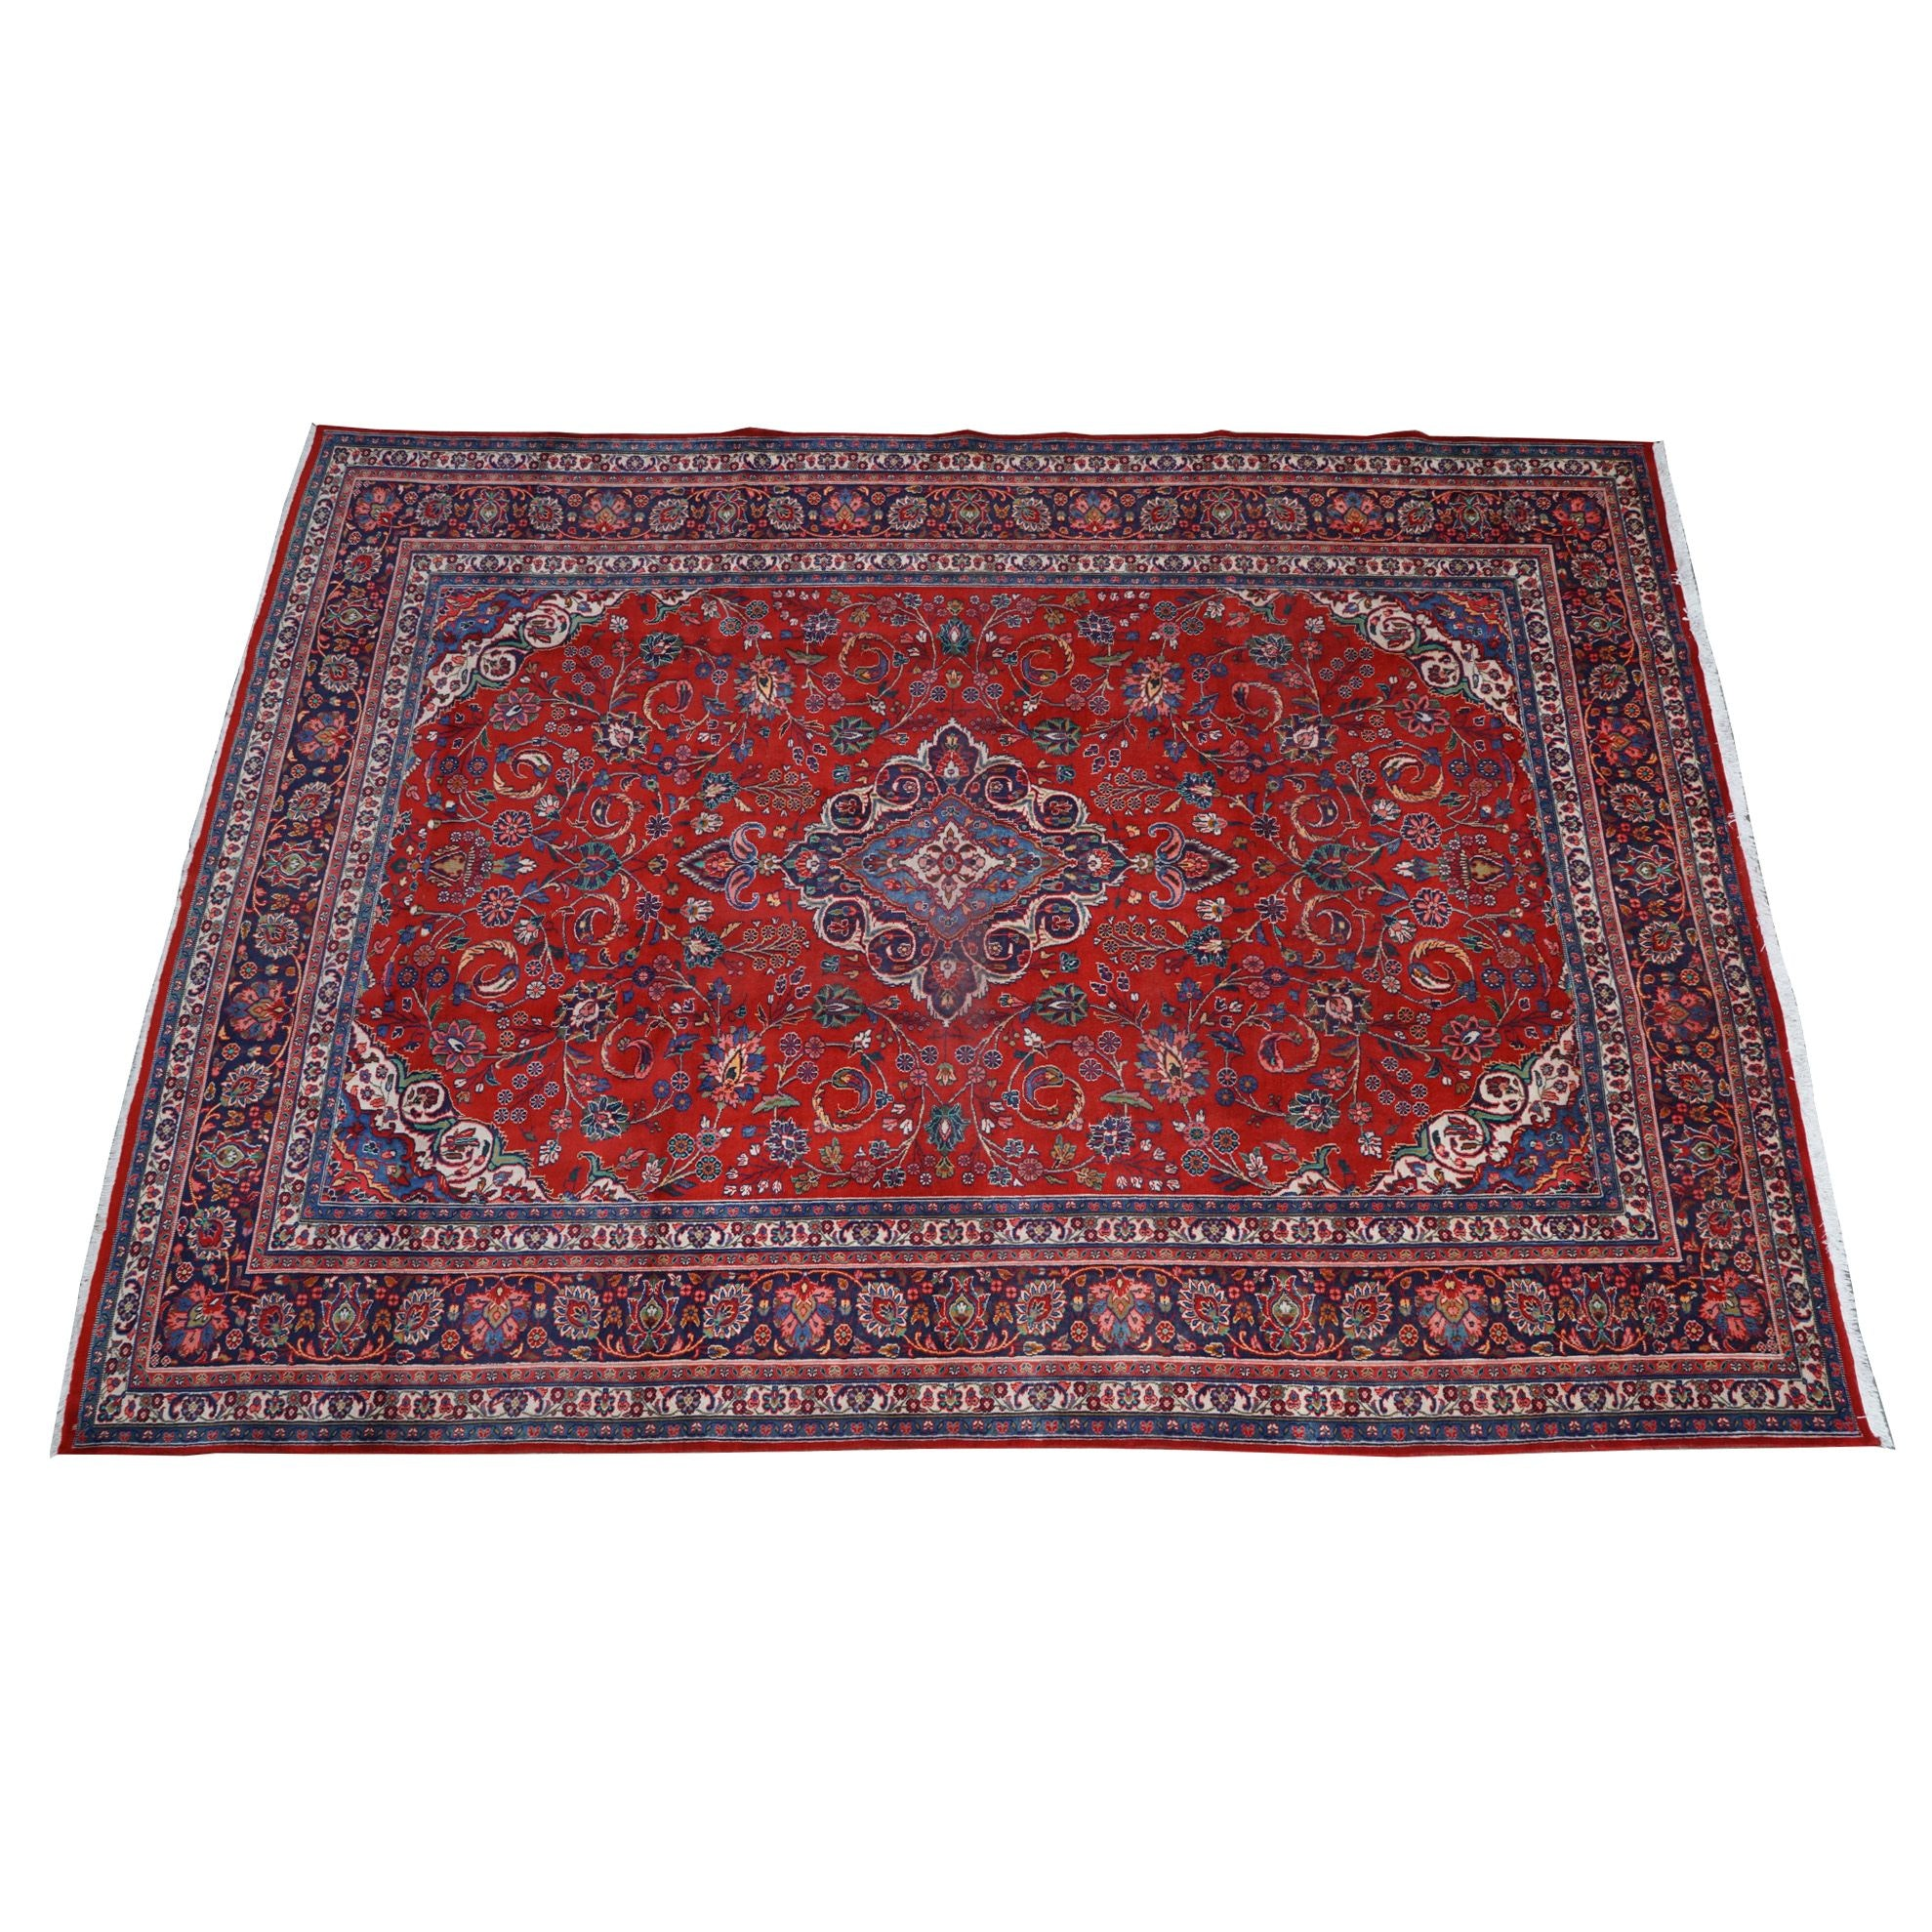 Hand-Knotted Persian Mashhad Wool Room Sized Rug